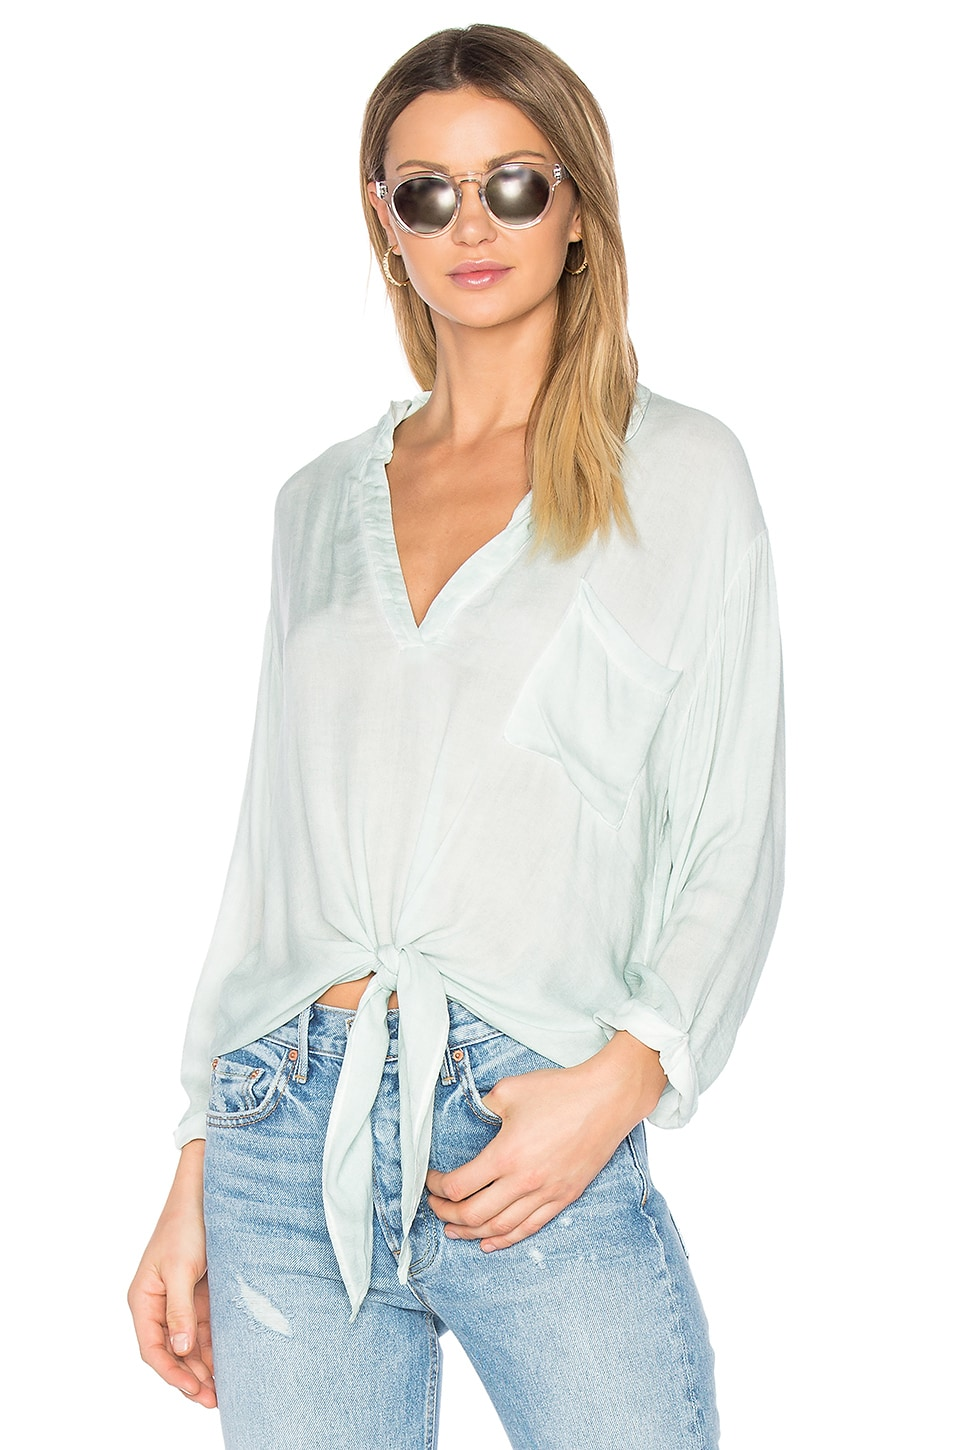 YFB CLOTHING Ellis Top in Seafoam